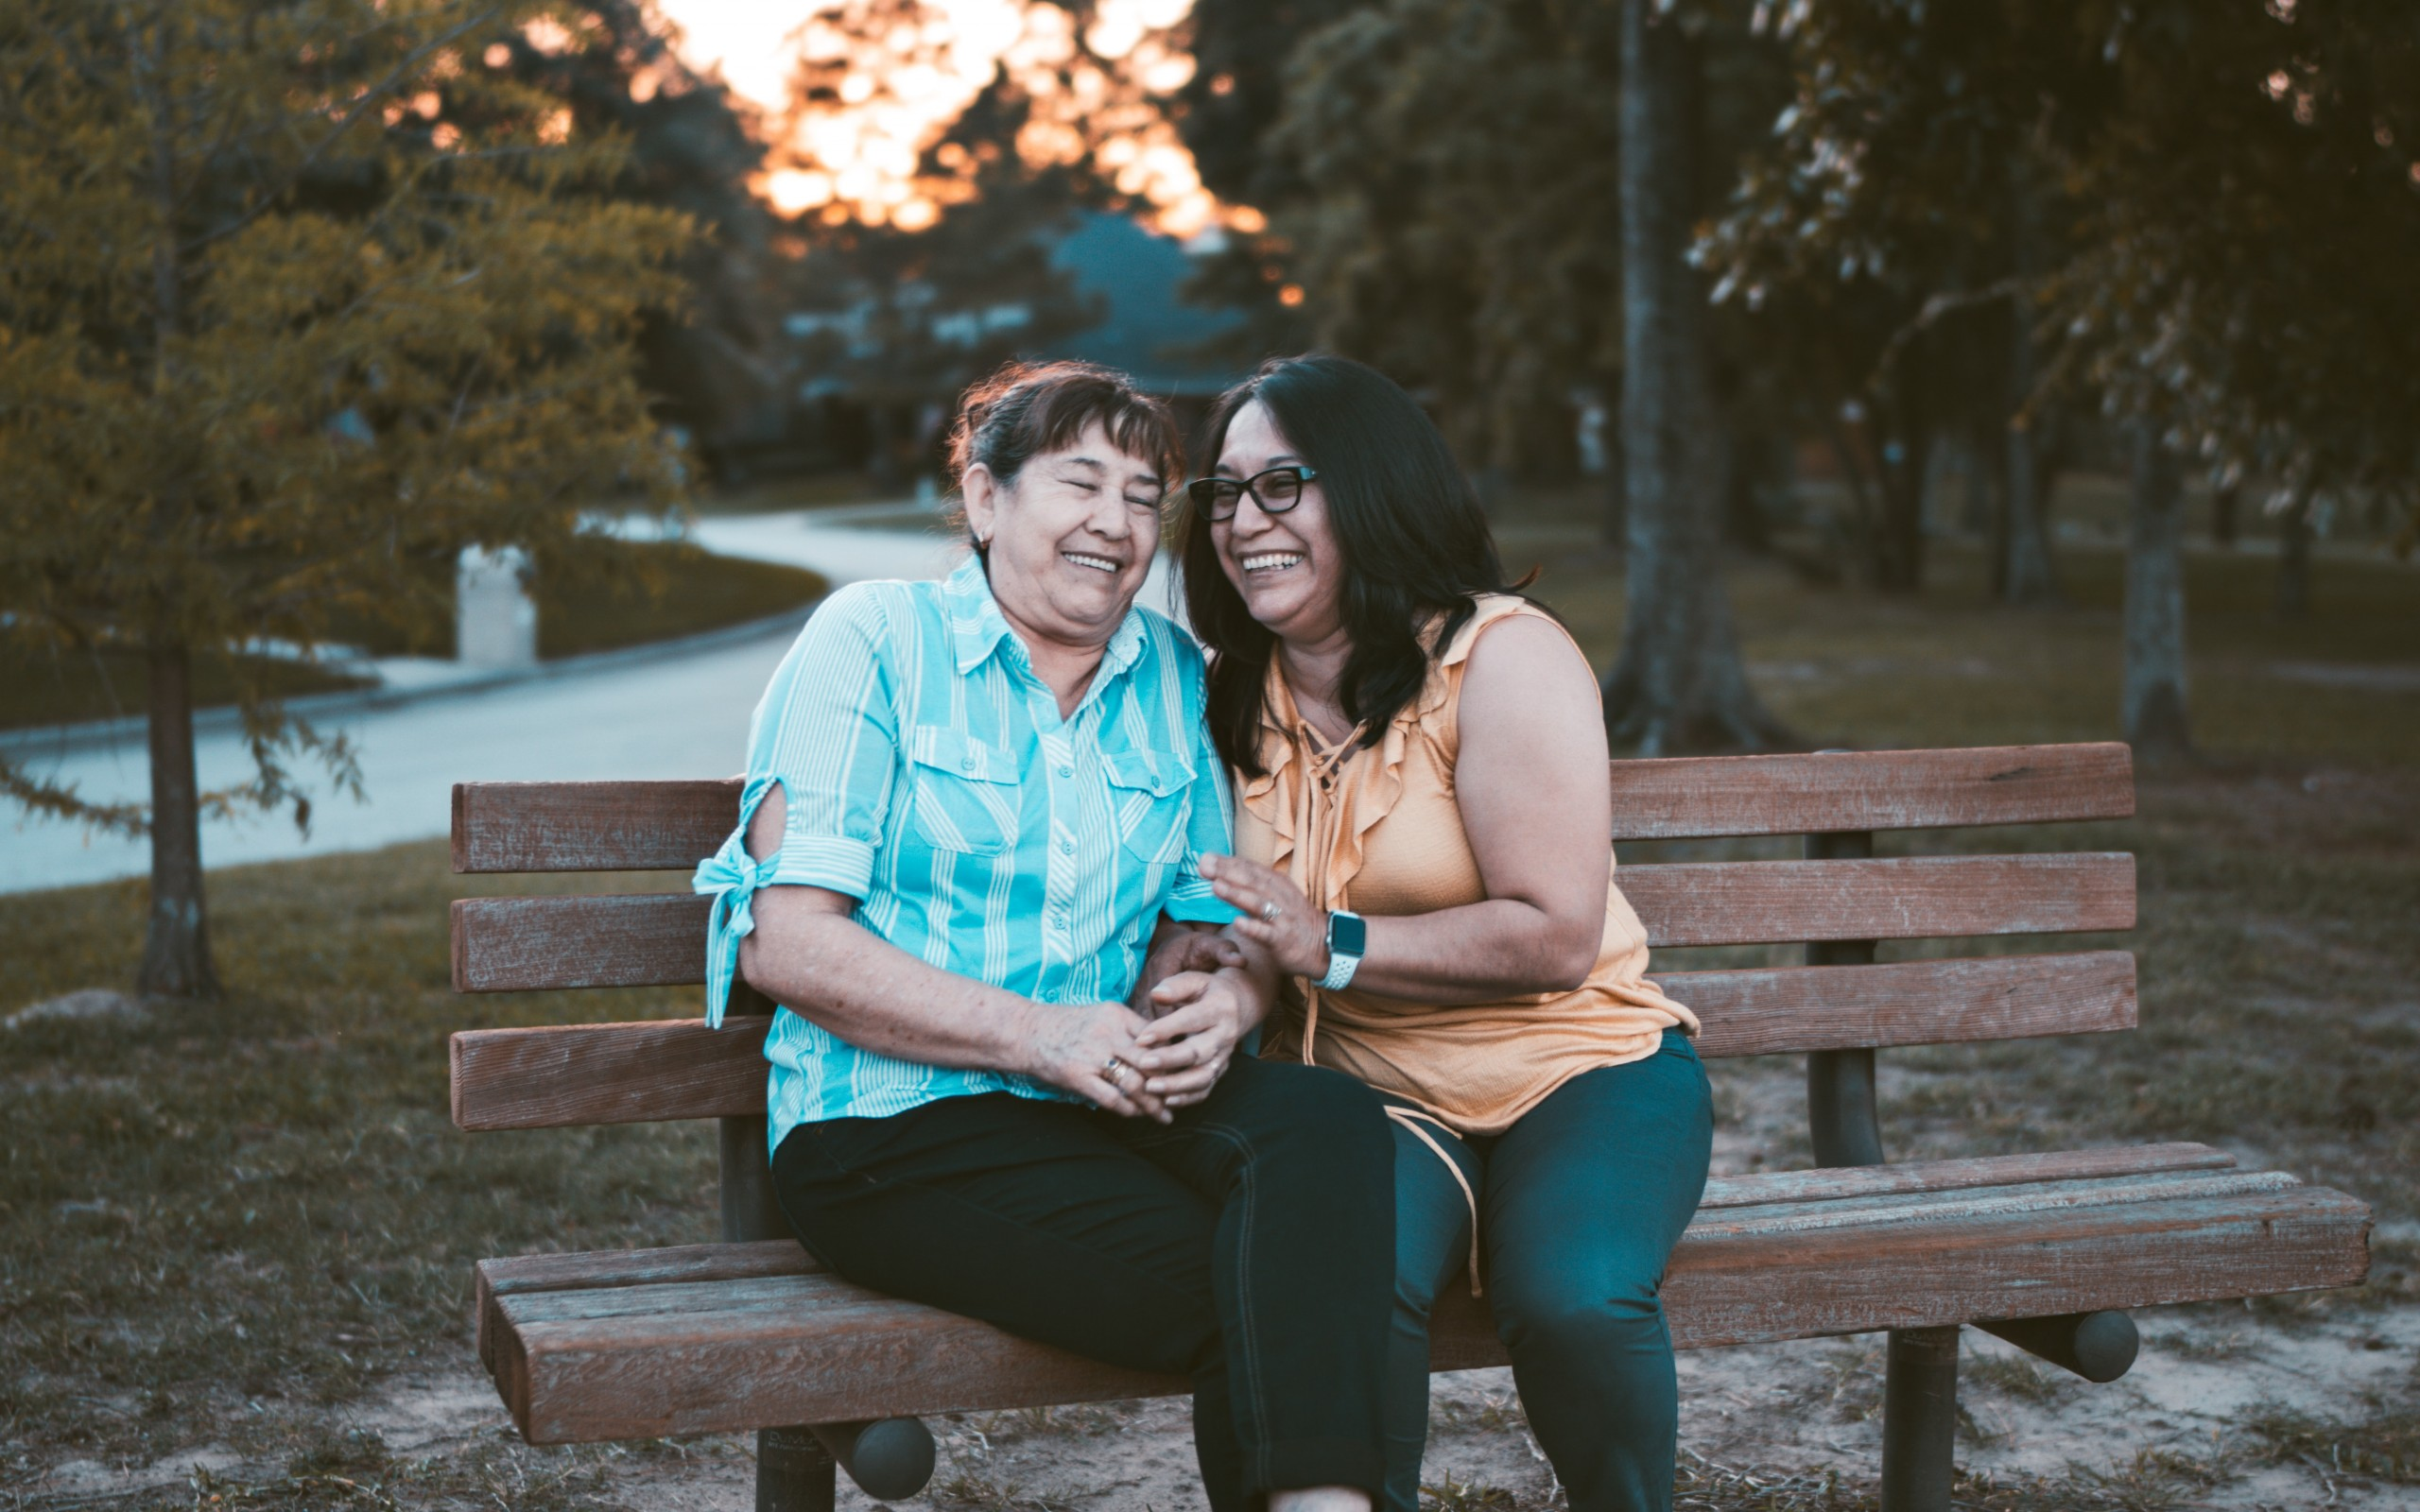 Two woman sitting on a bench smiling